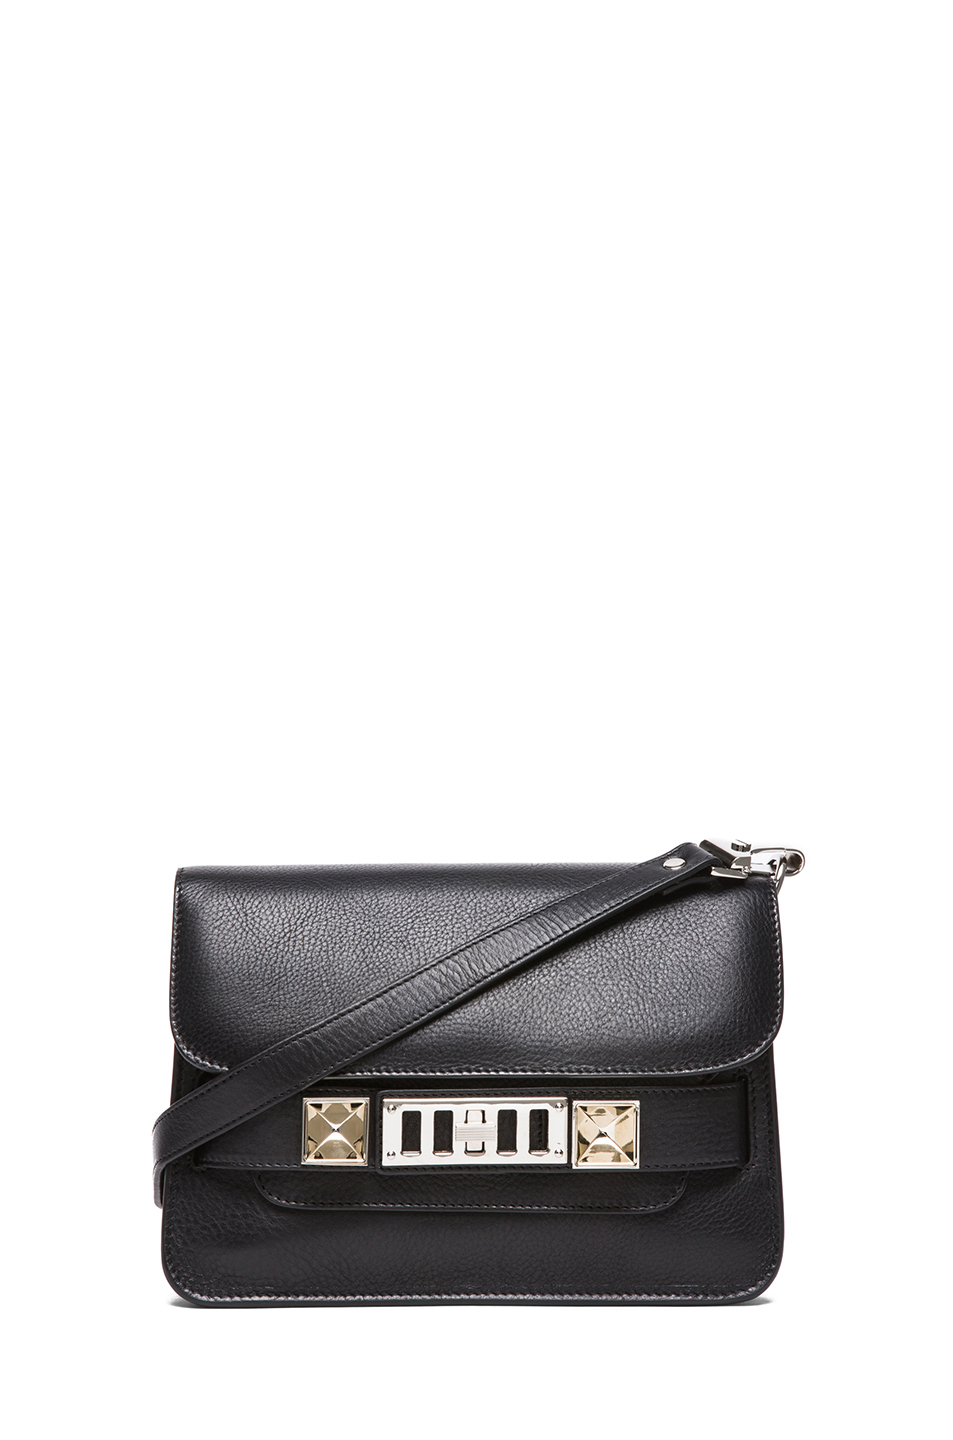 Proenza Schouler | Mini PS11 Classic in Black